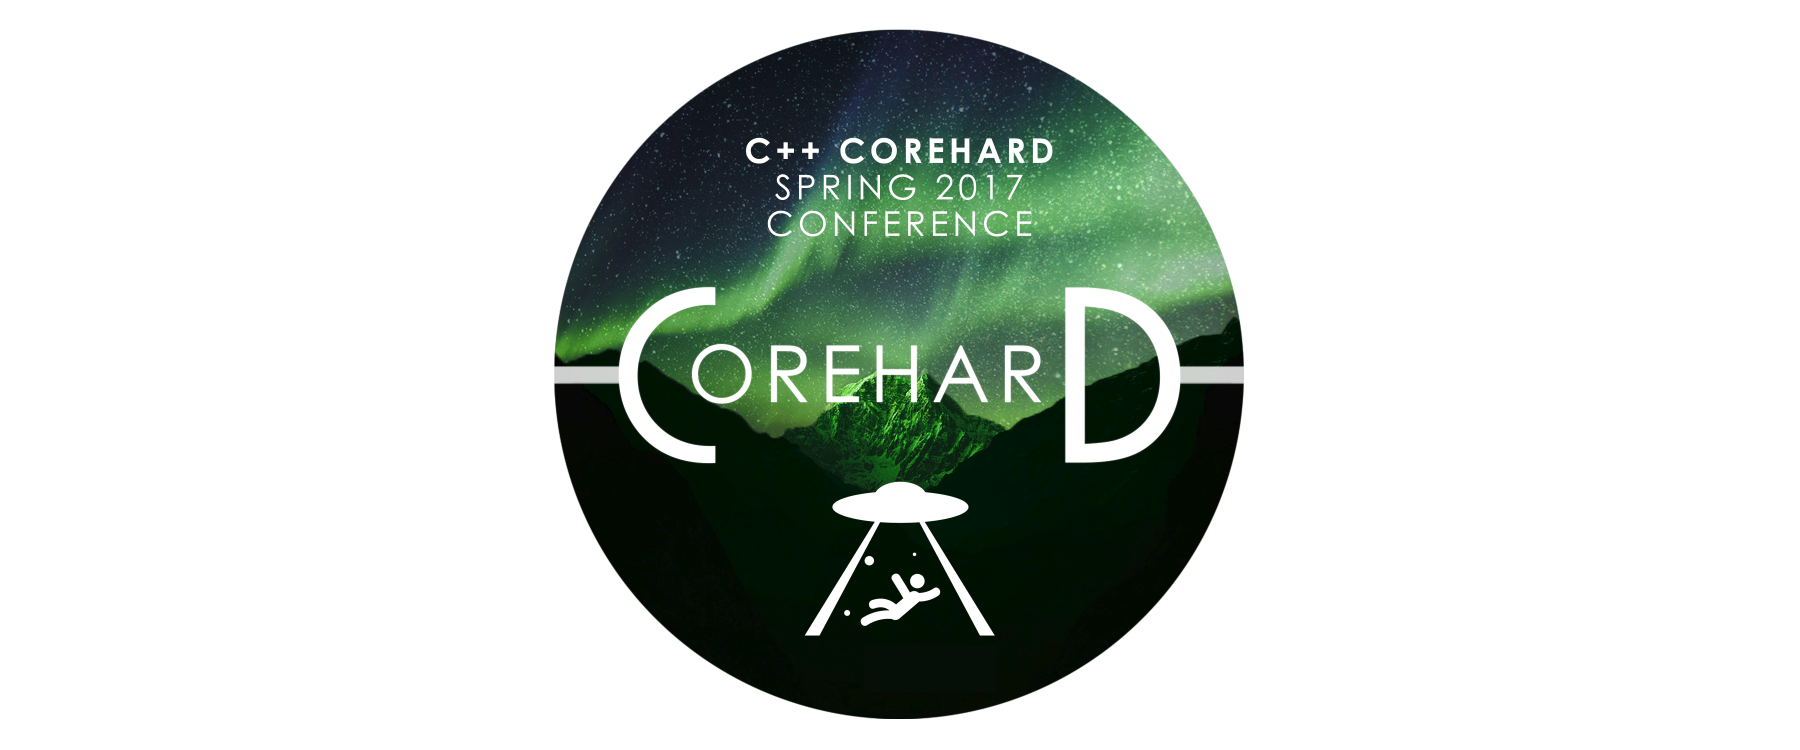 C++ CoreHard Spring 2017 Conference